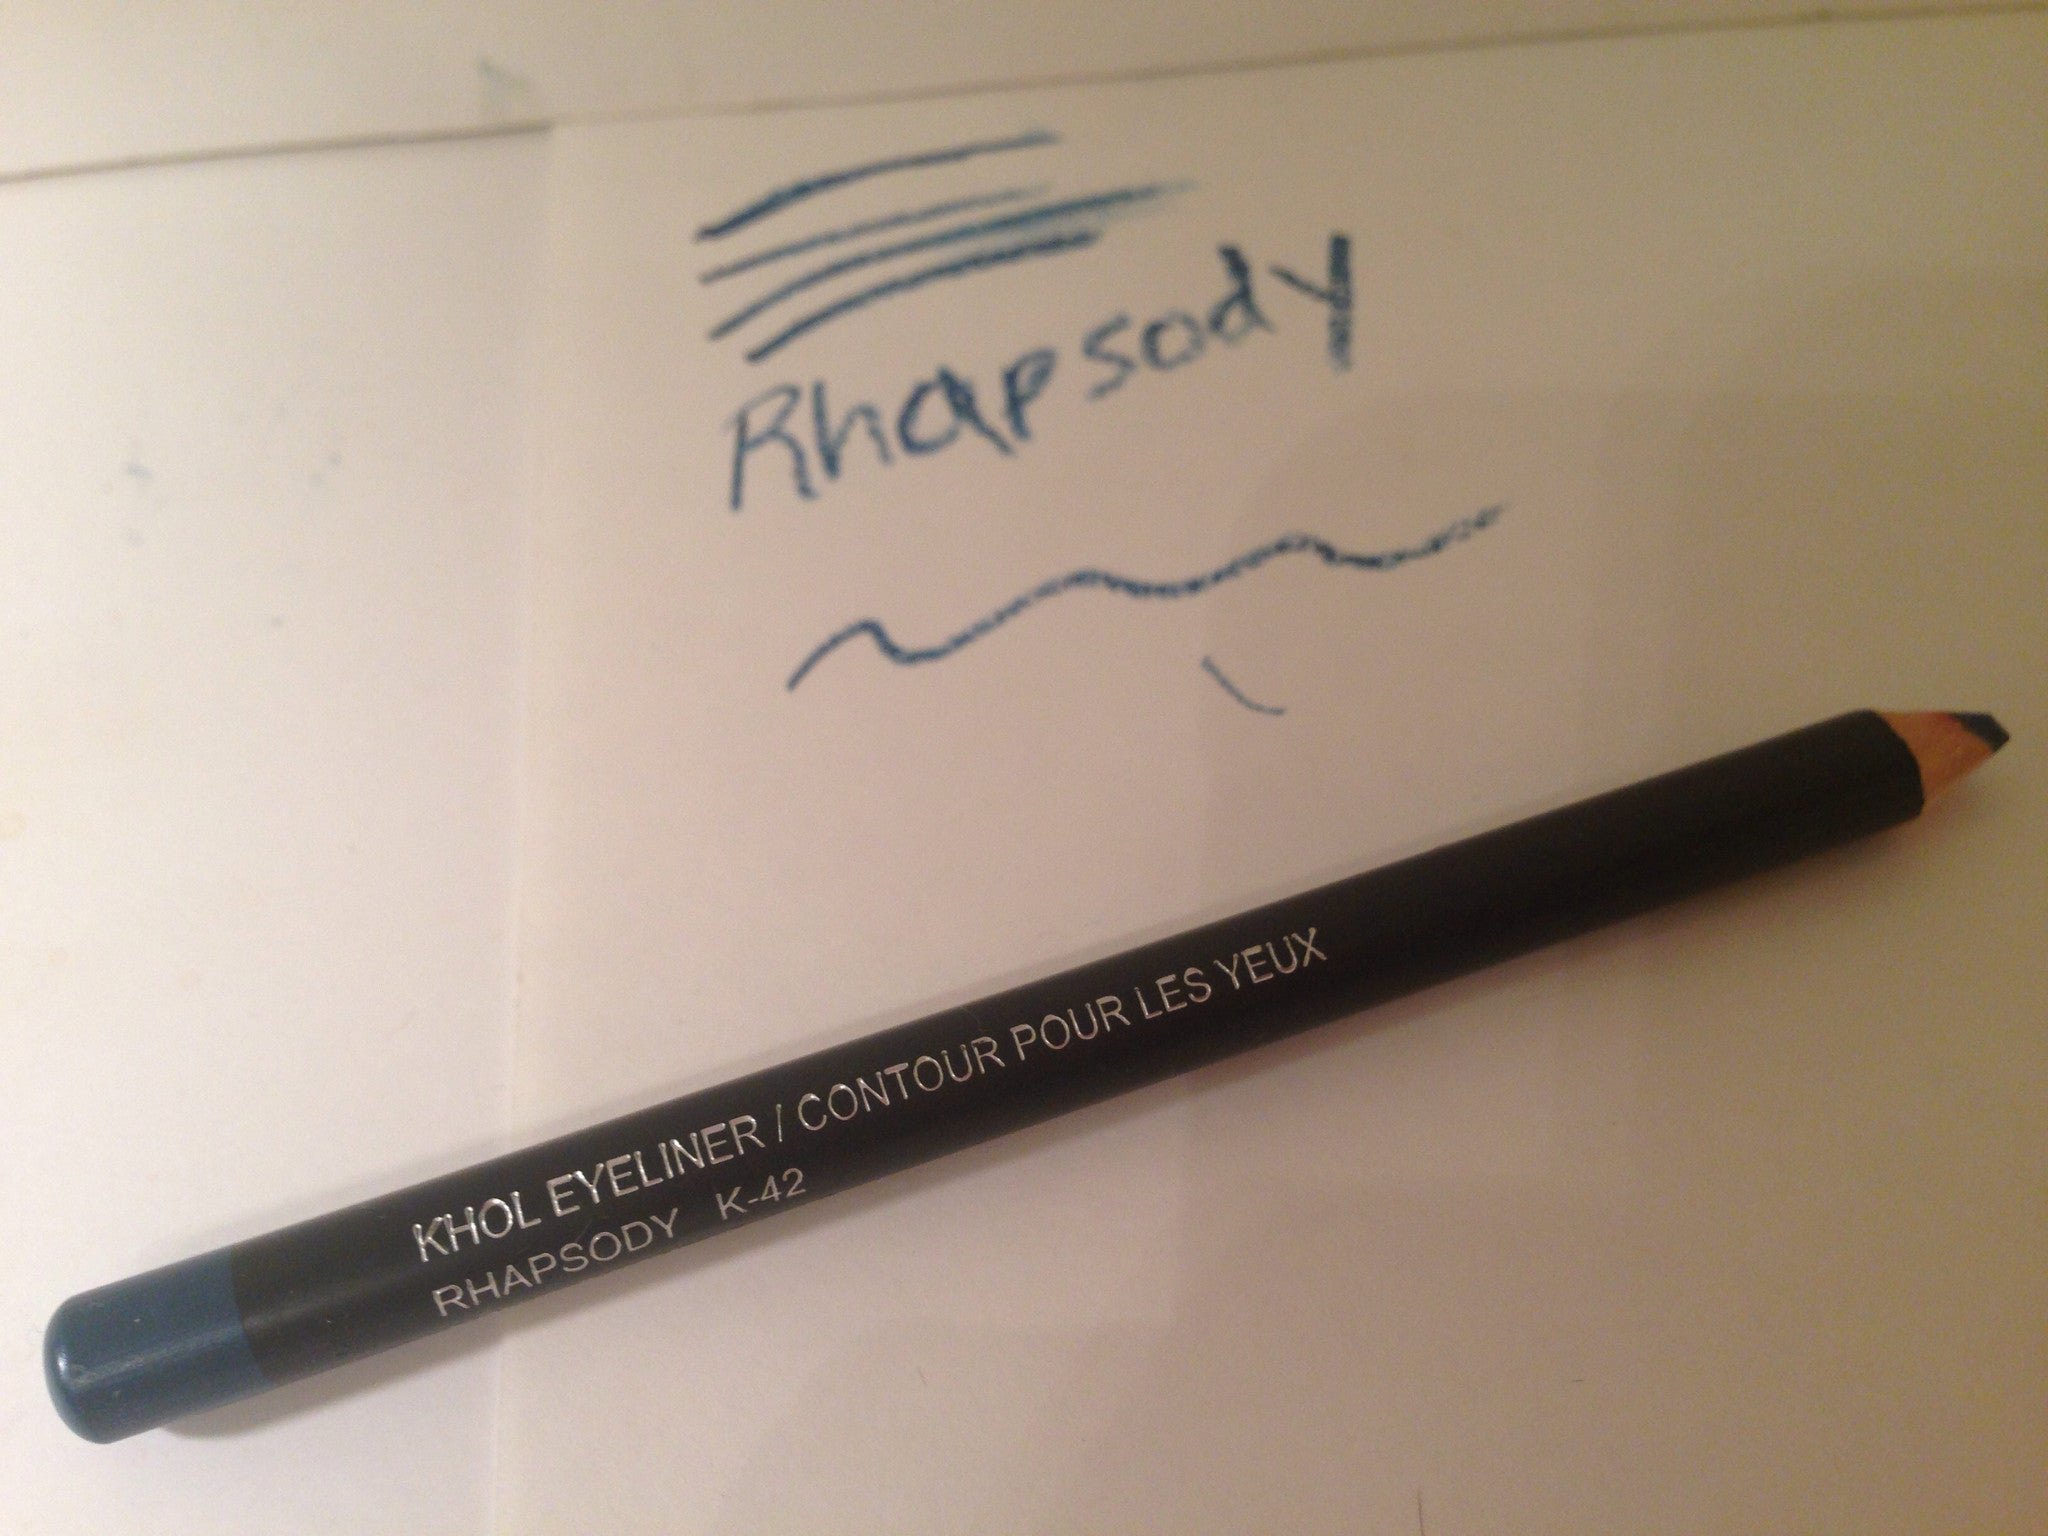 Rhapsody Kohl Eyeliner Pencil with Metal Sharpener